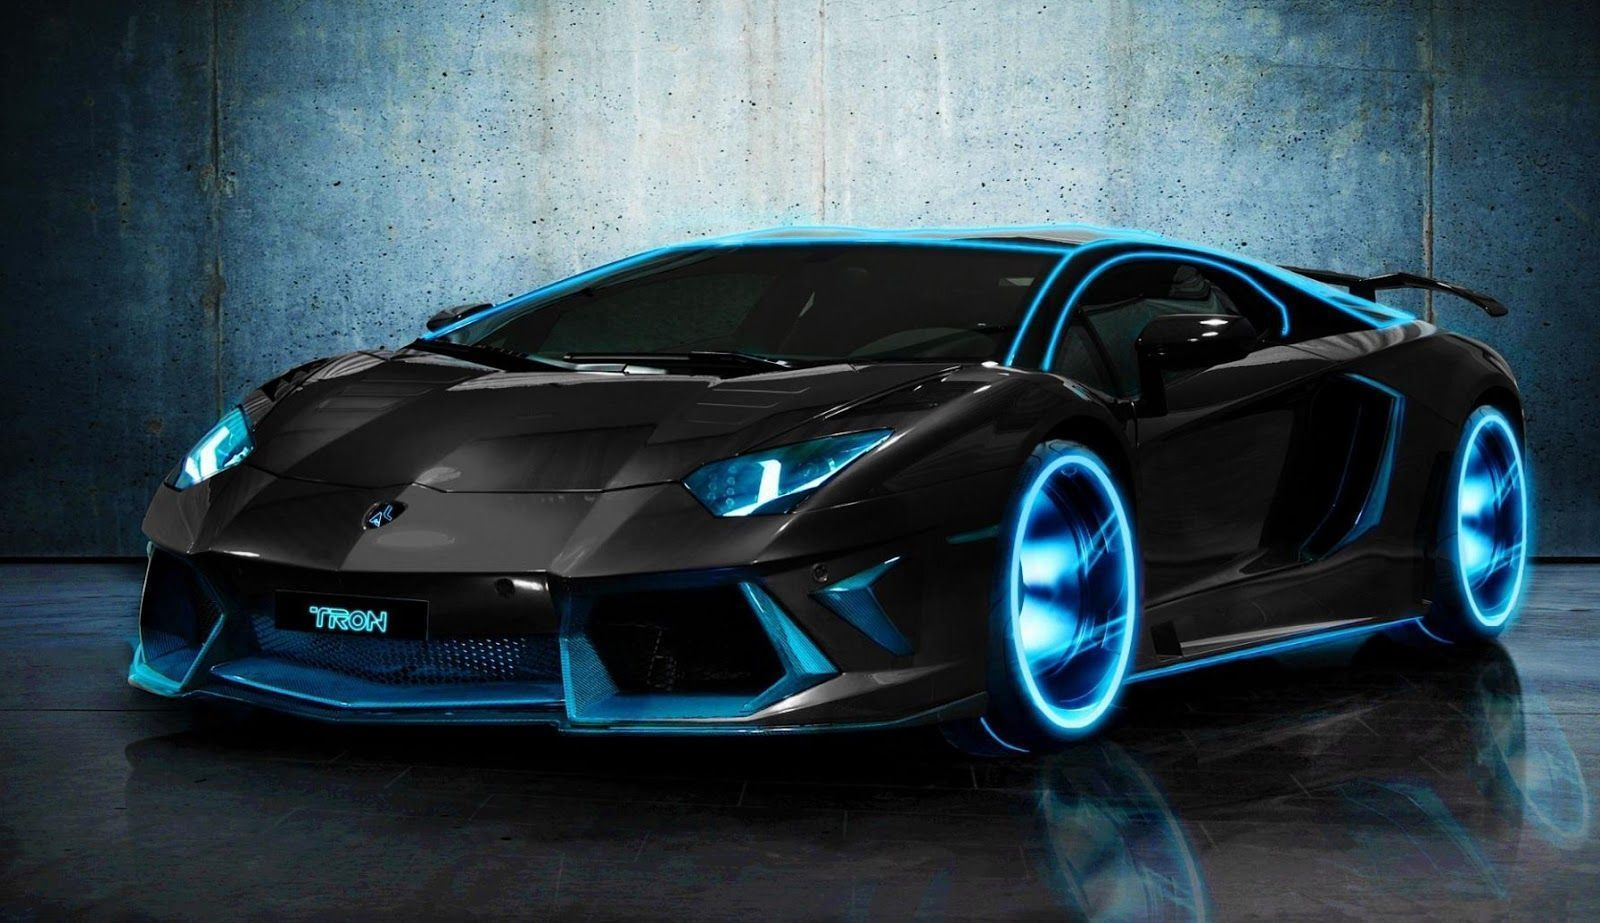 Live New Sports Car Picture designs